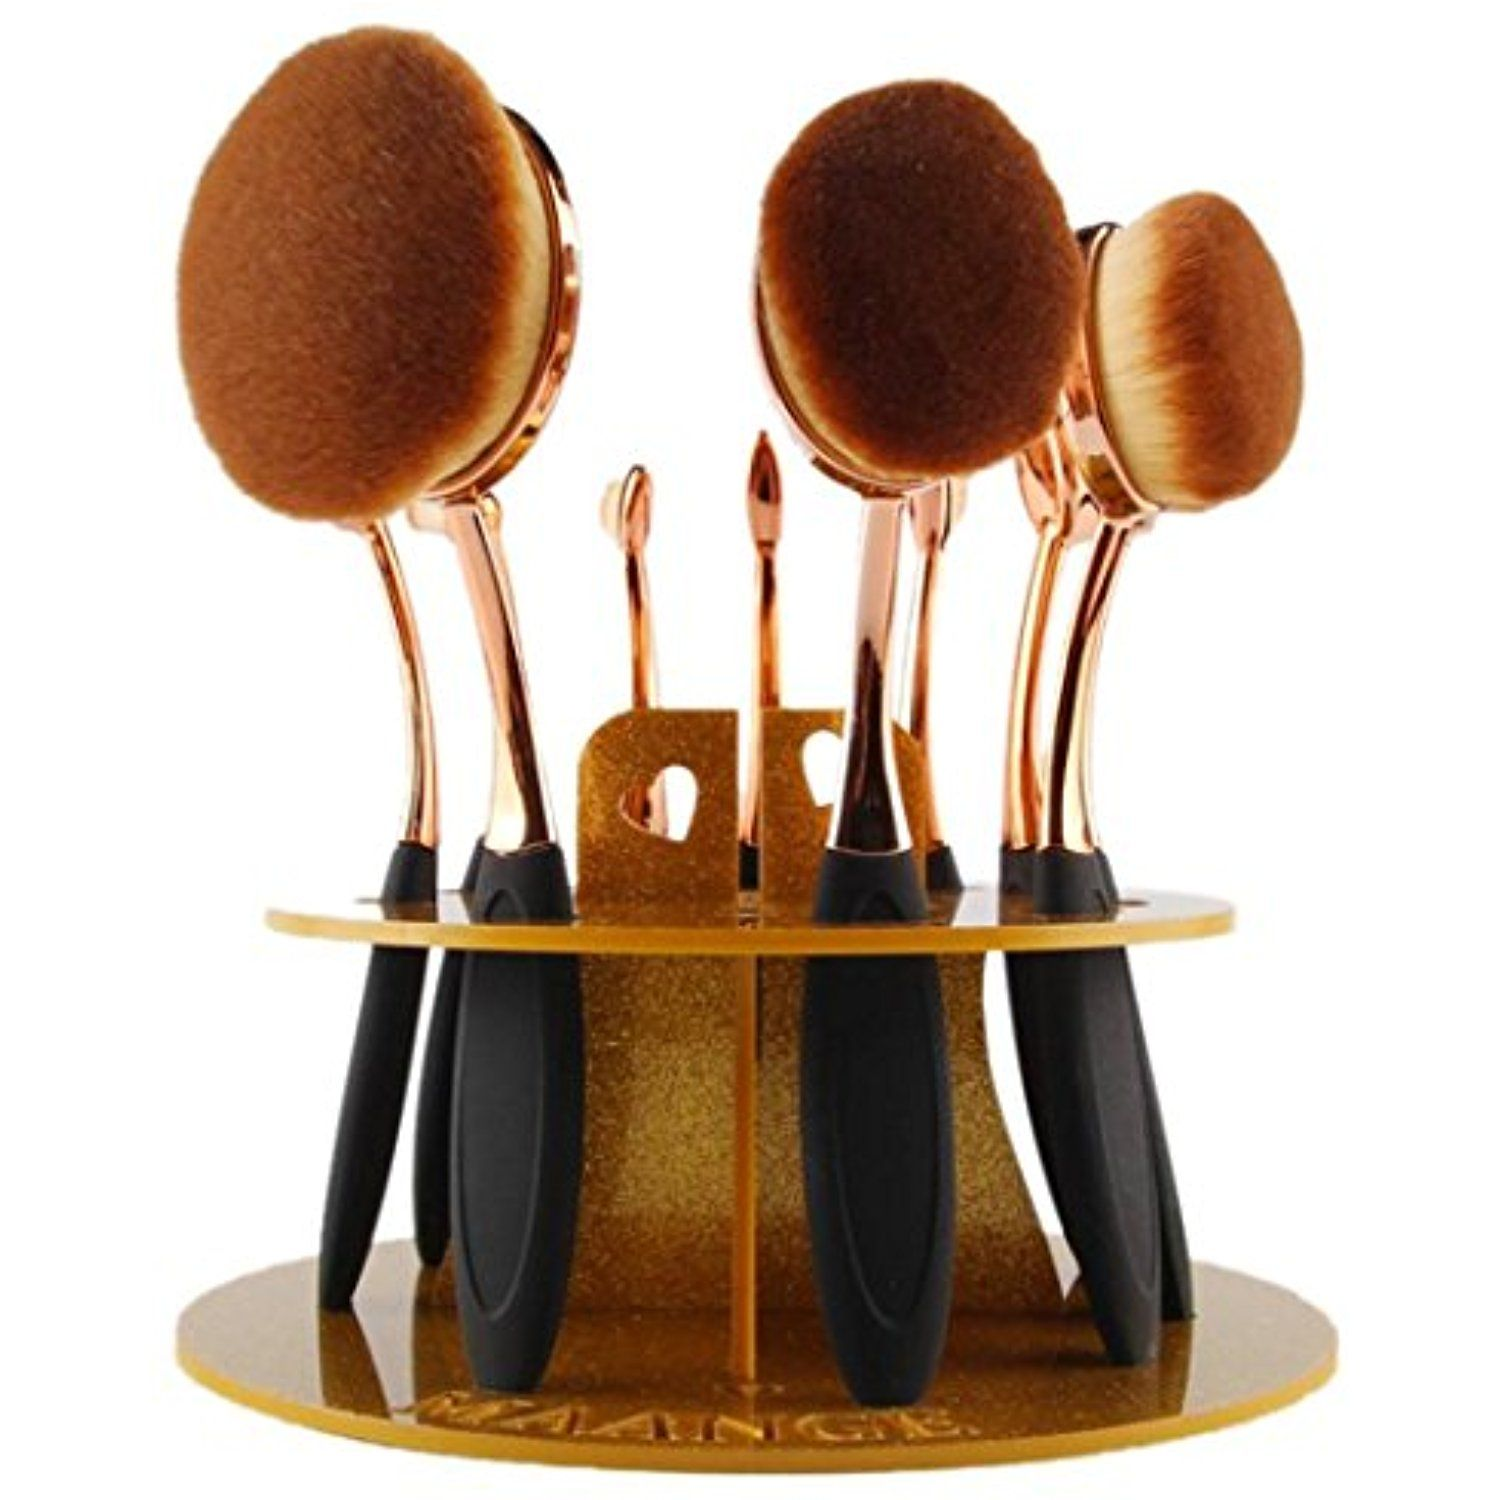 Voberry 10 Hole Oval Makeup Brush Holder Drying Rack